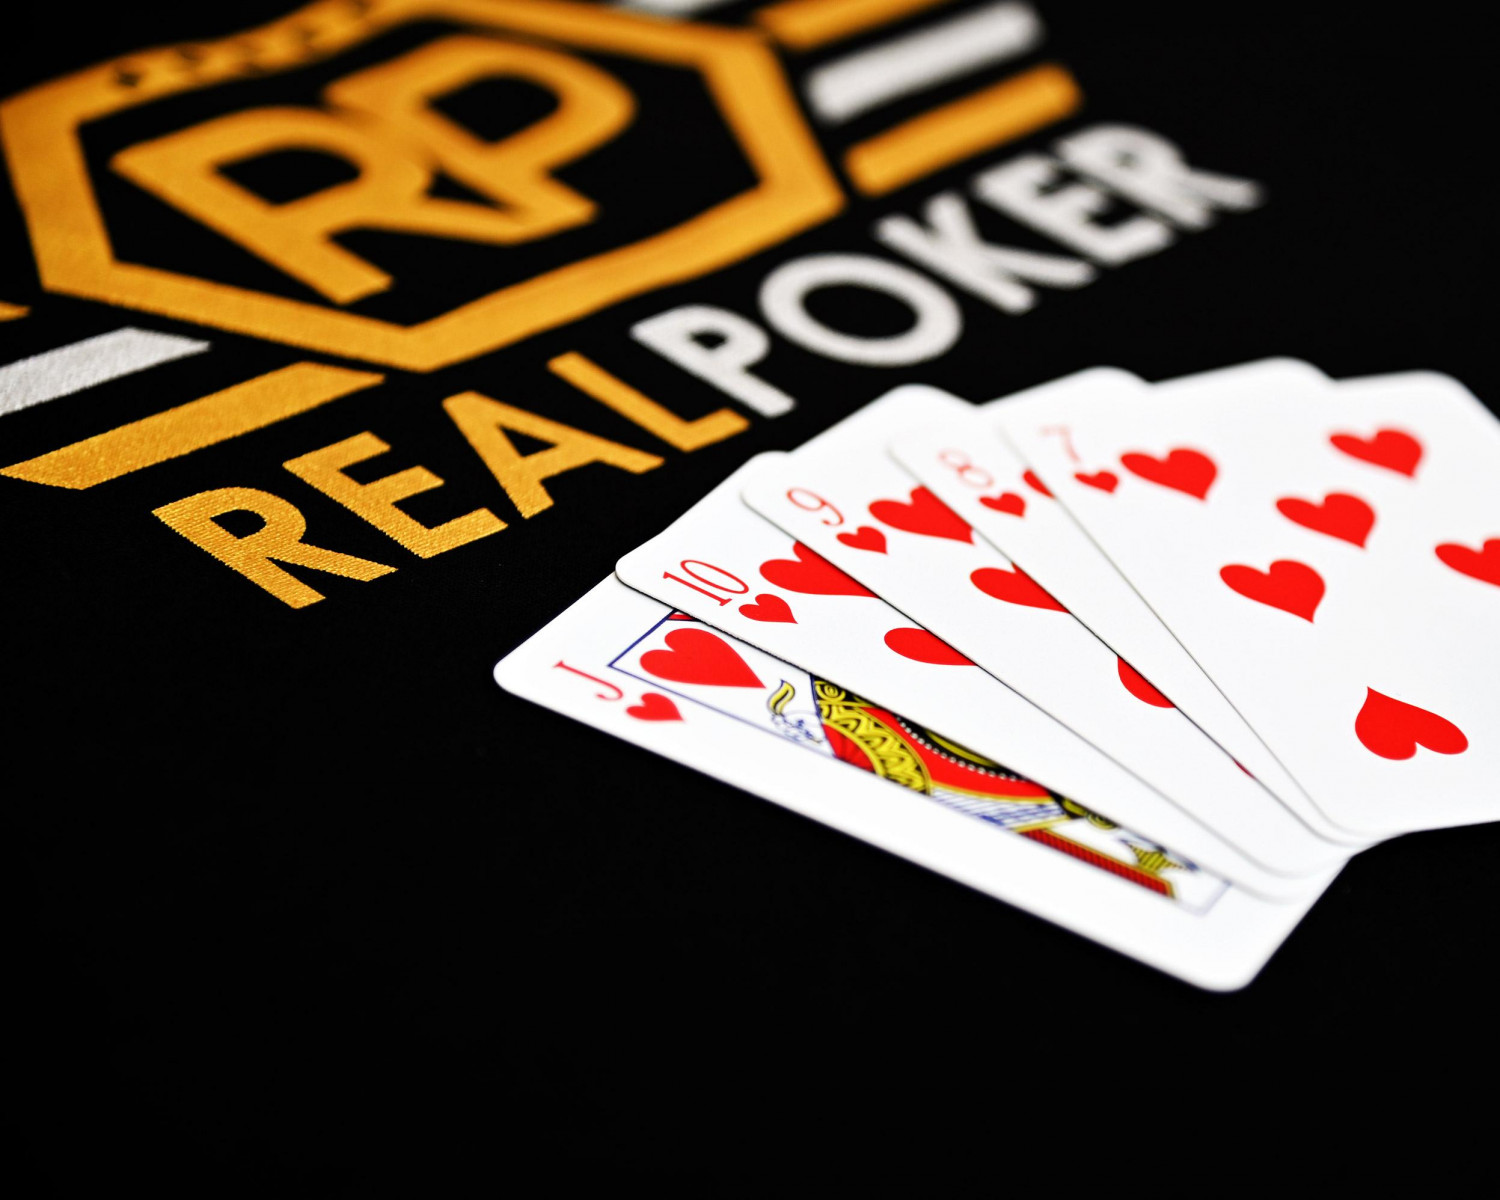 Poker, like with all legal betting